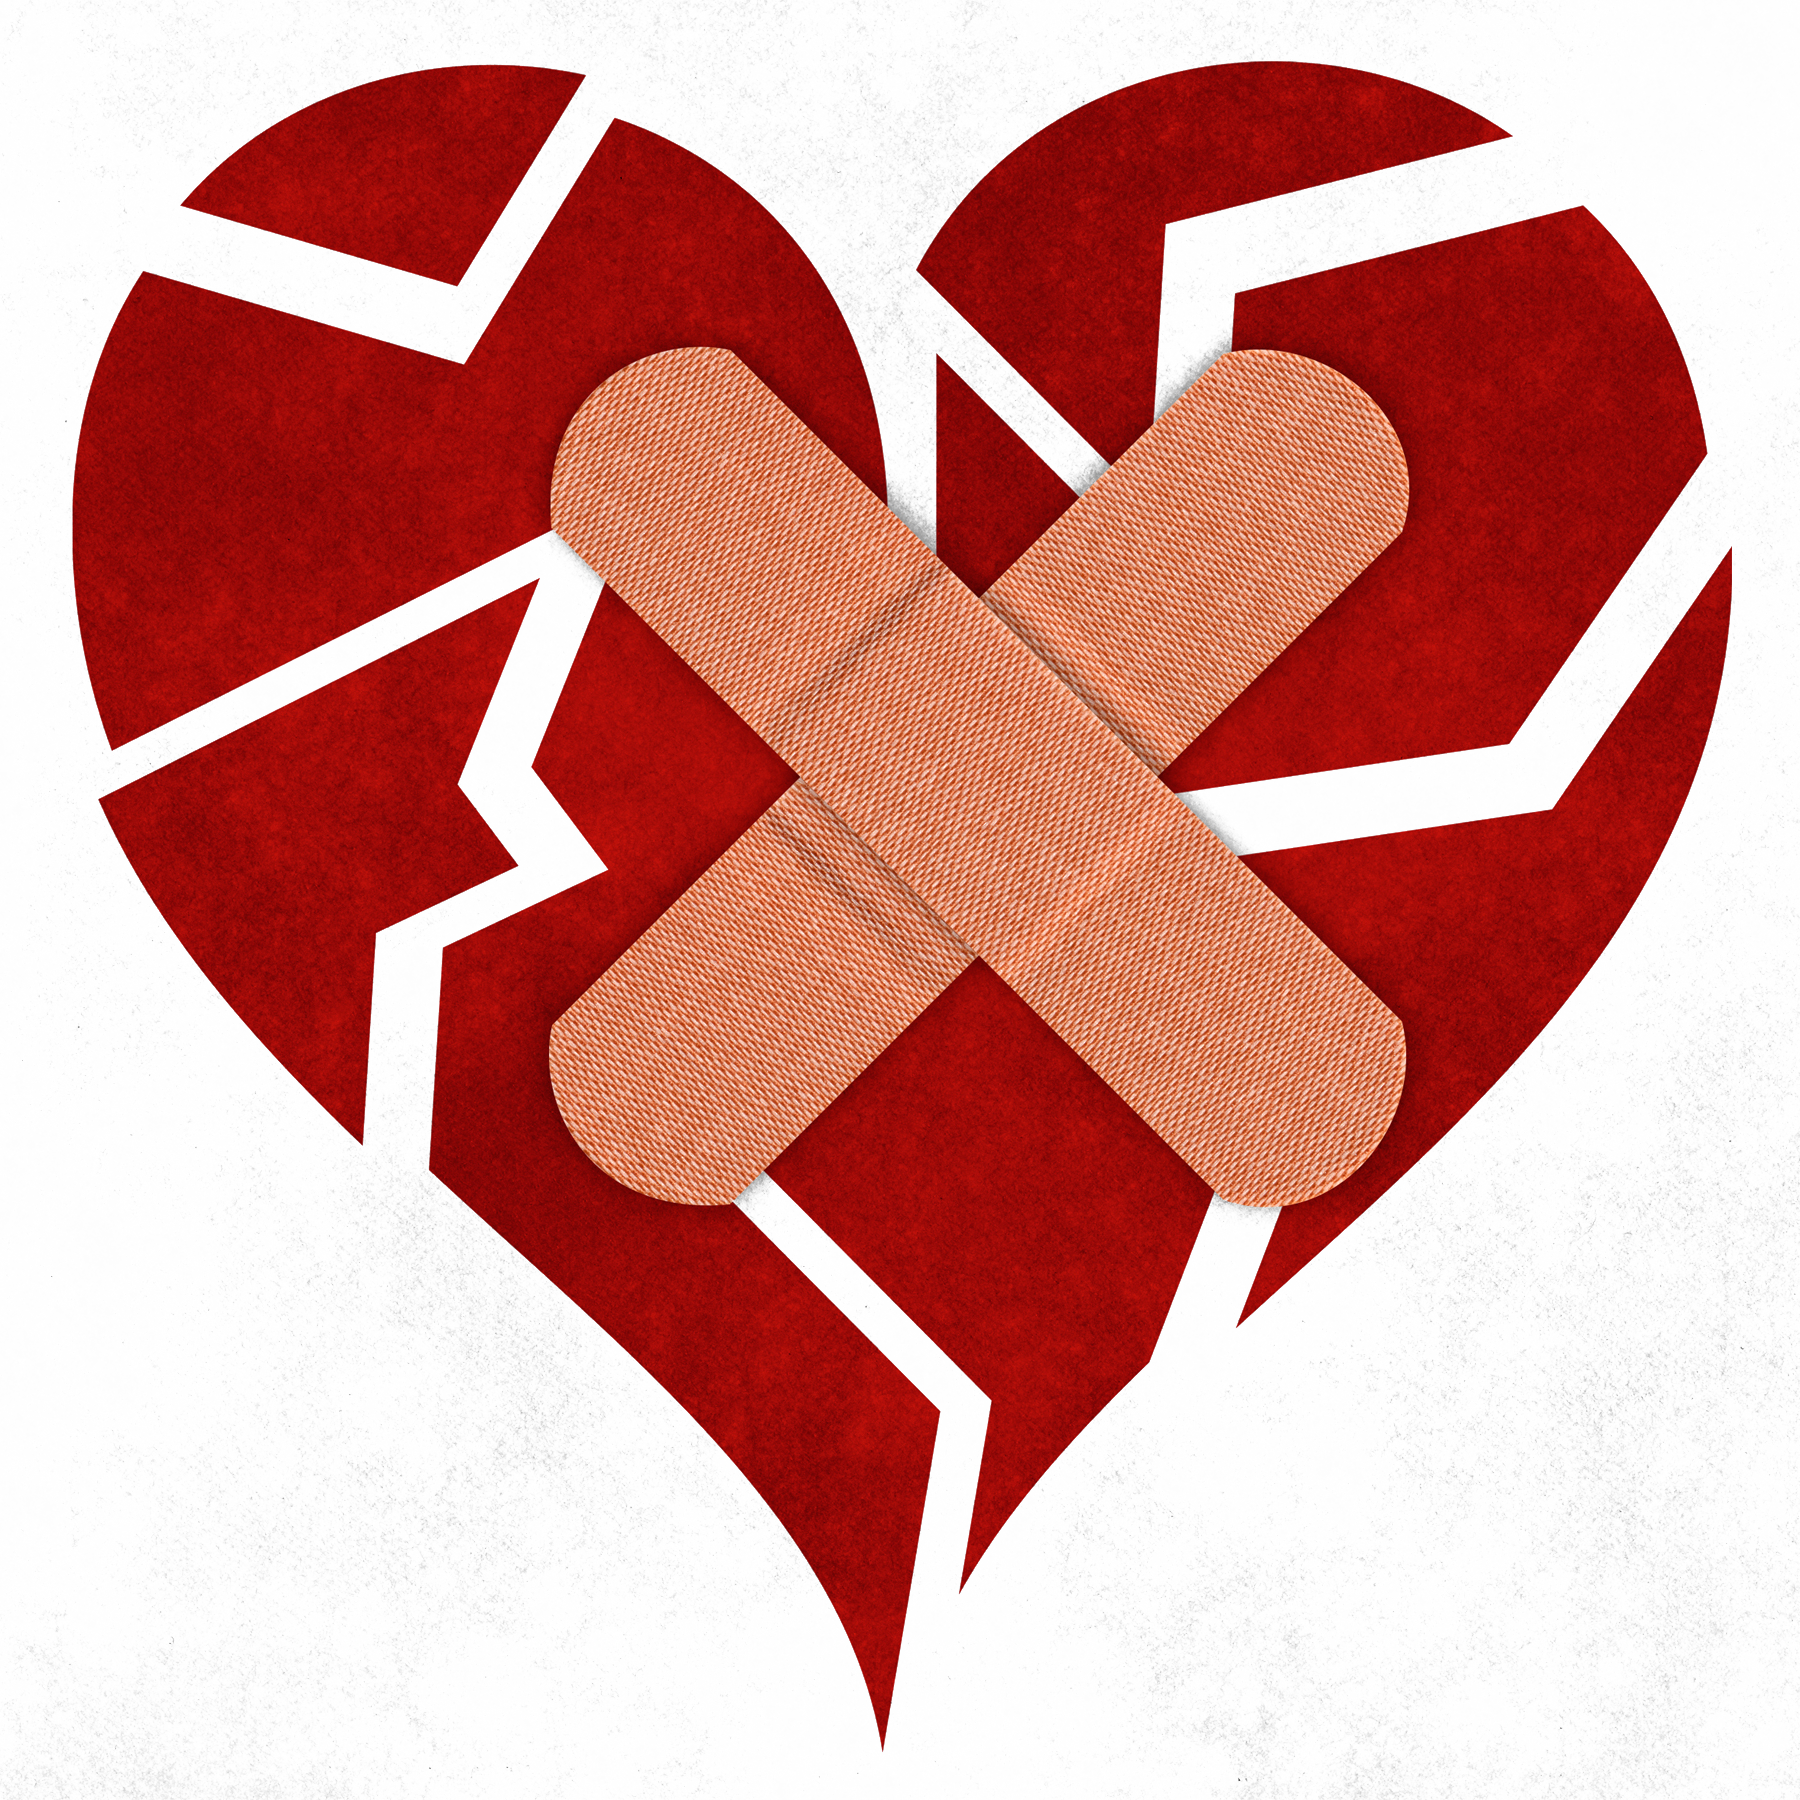 Broken heart with bandaid clipart image black and white library Broken heart Takotsubo cardiomyopathy Healing - Scarred heart 1800 ... image black and white library